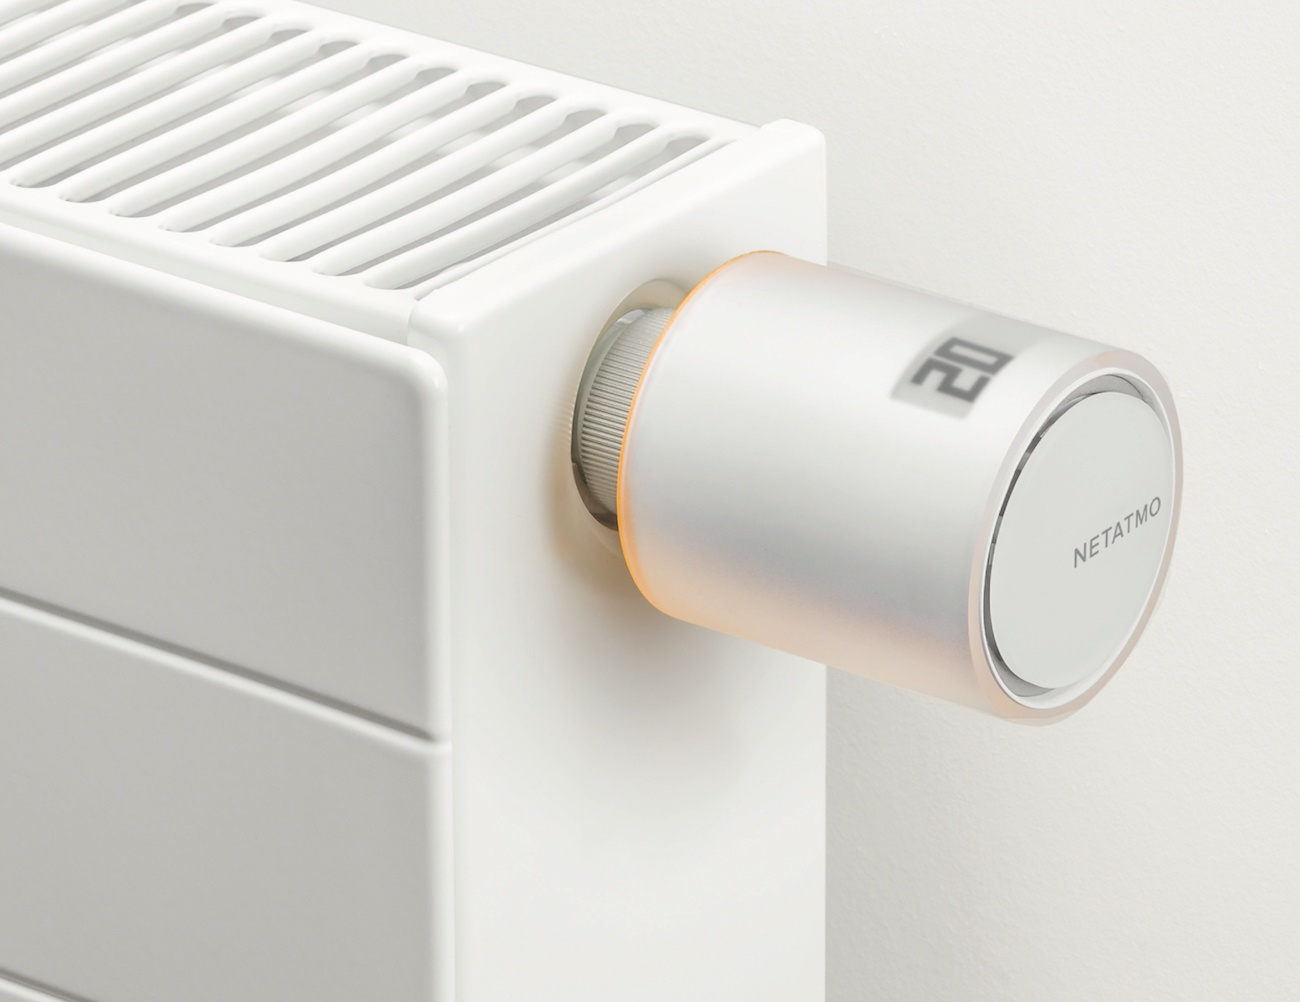 Netatmo Valves for Radiators